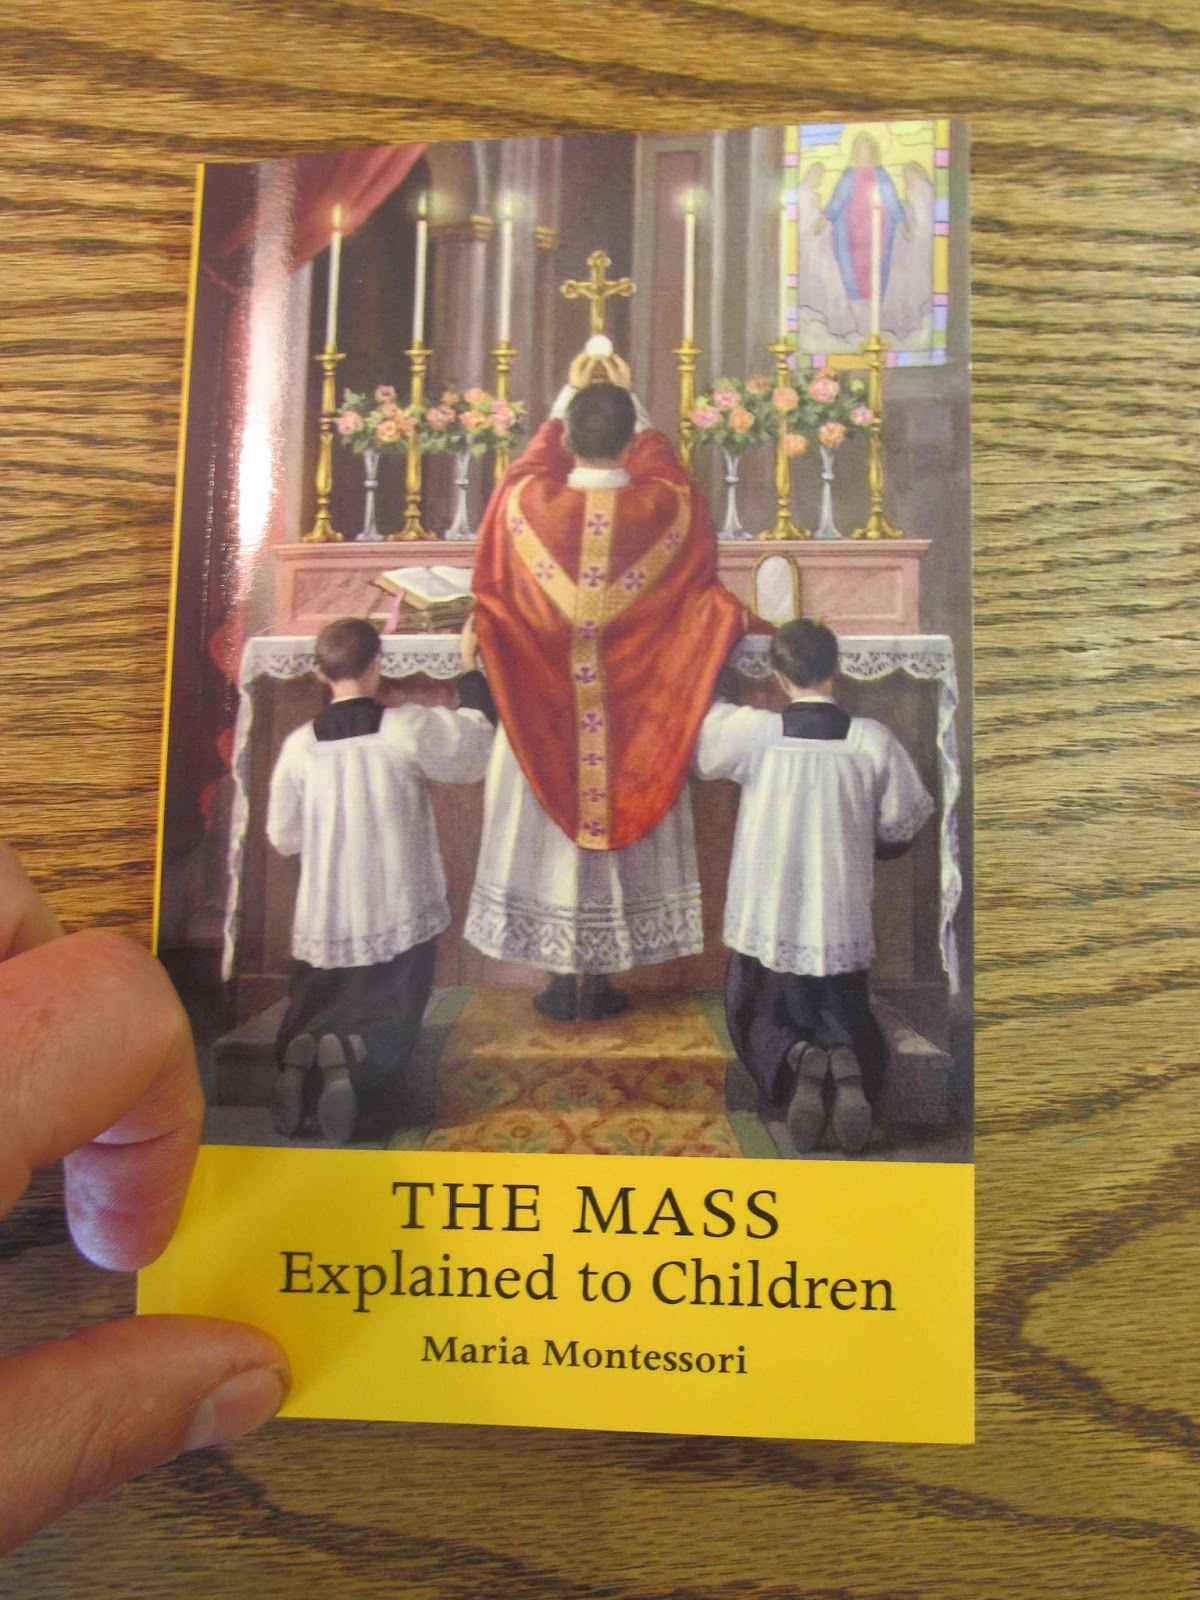 Turning to the reprint of a 1933 classic, The Mass Explained to Children, I  doubt that Maria Montessori needs an introduction to readers here.